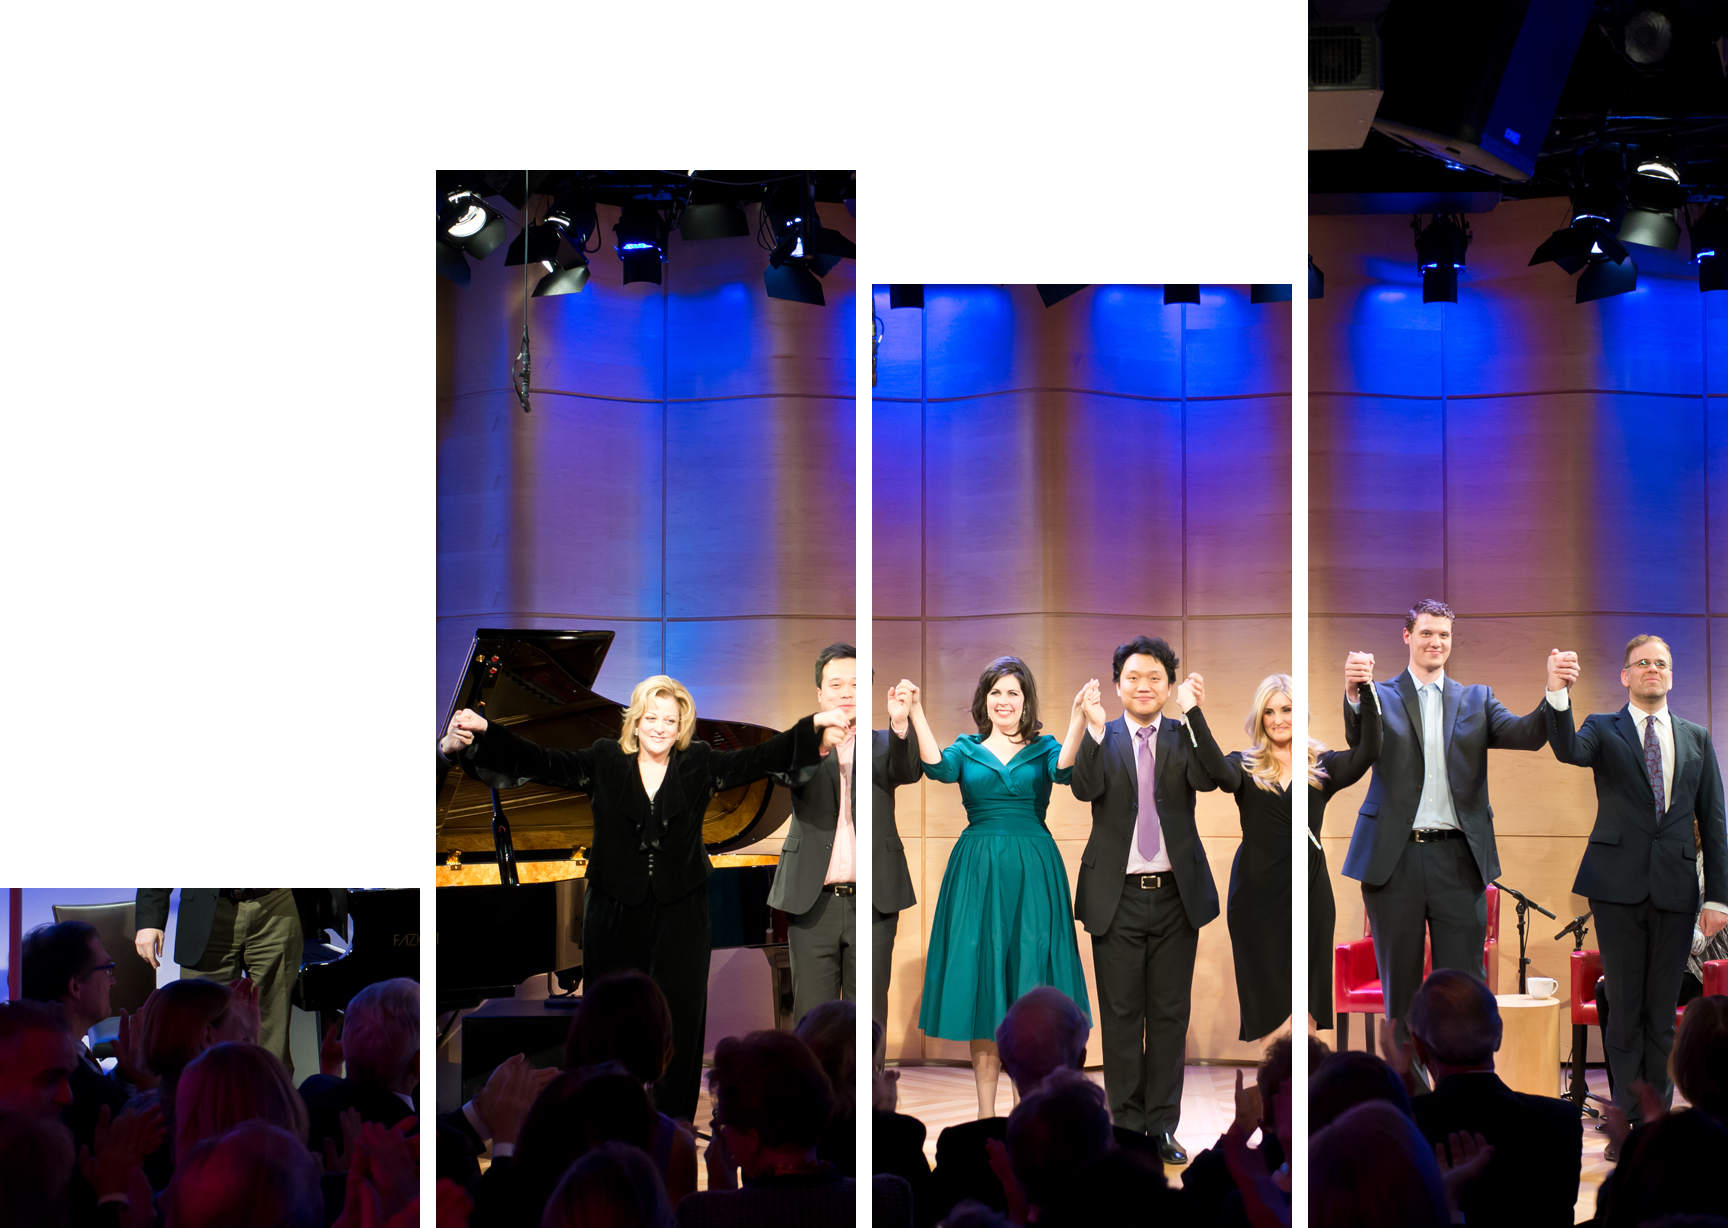 WQXR's Classical Up Close